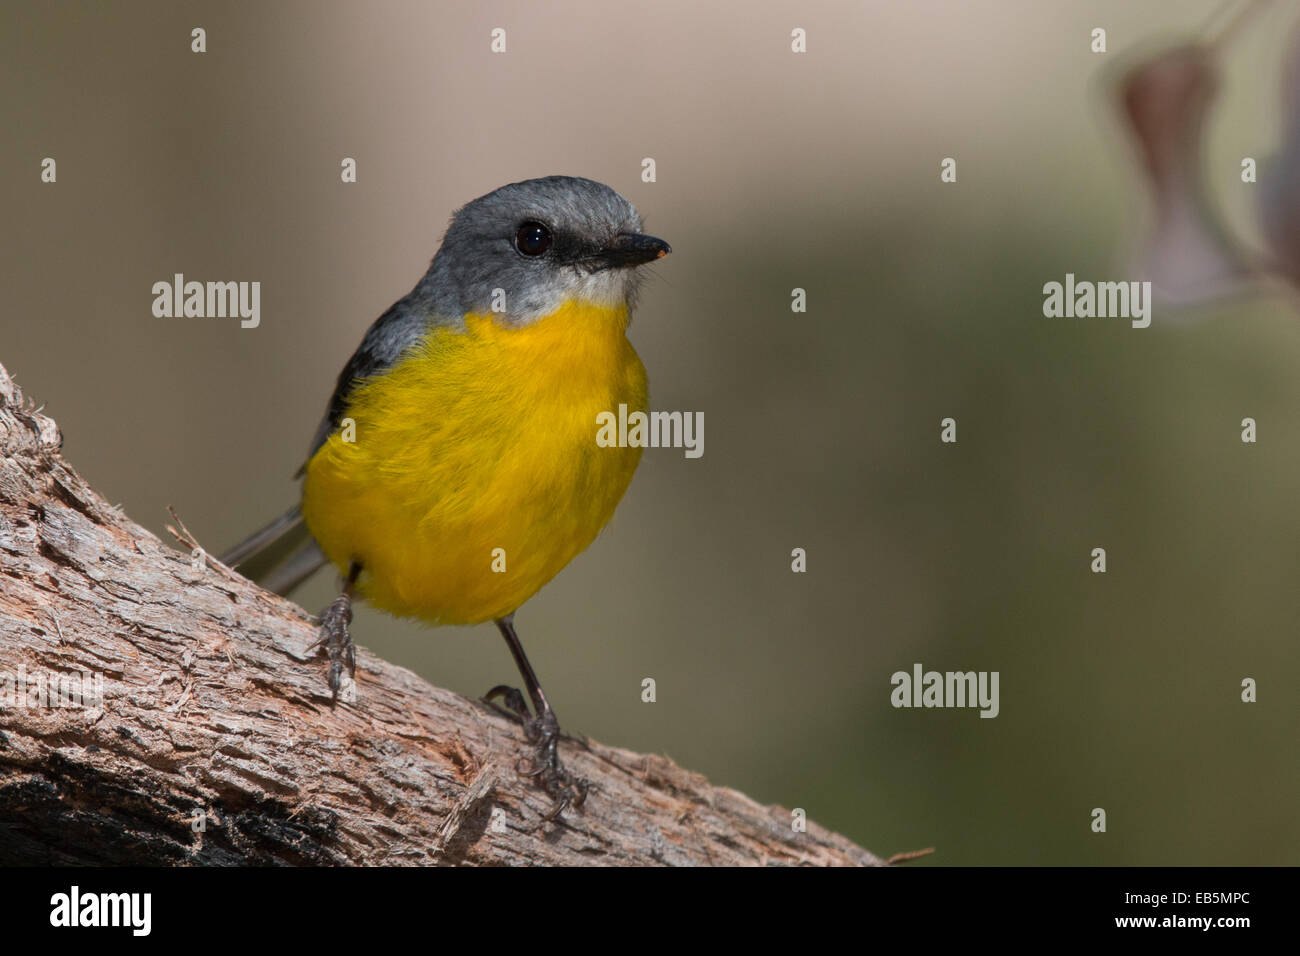 Eastern Yellow Robin (Eopsaltria australis) Stock Photo